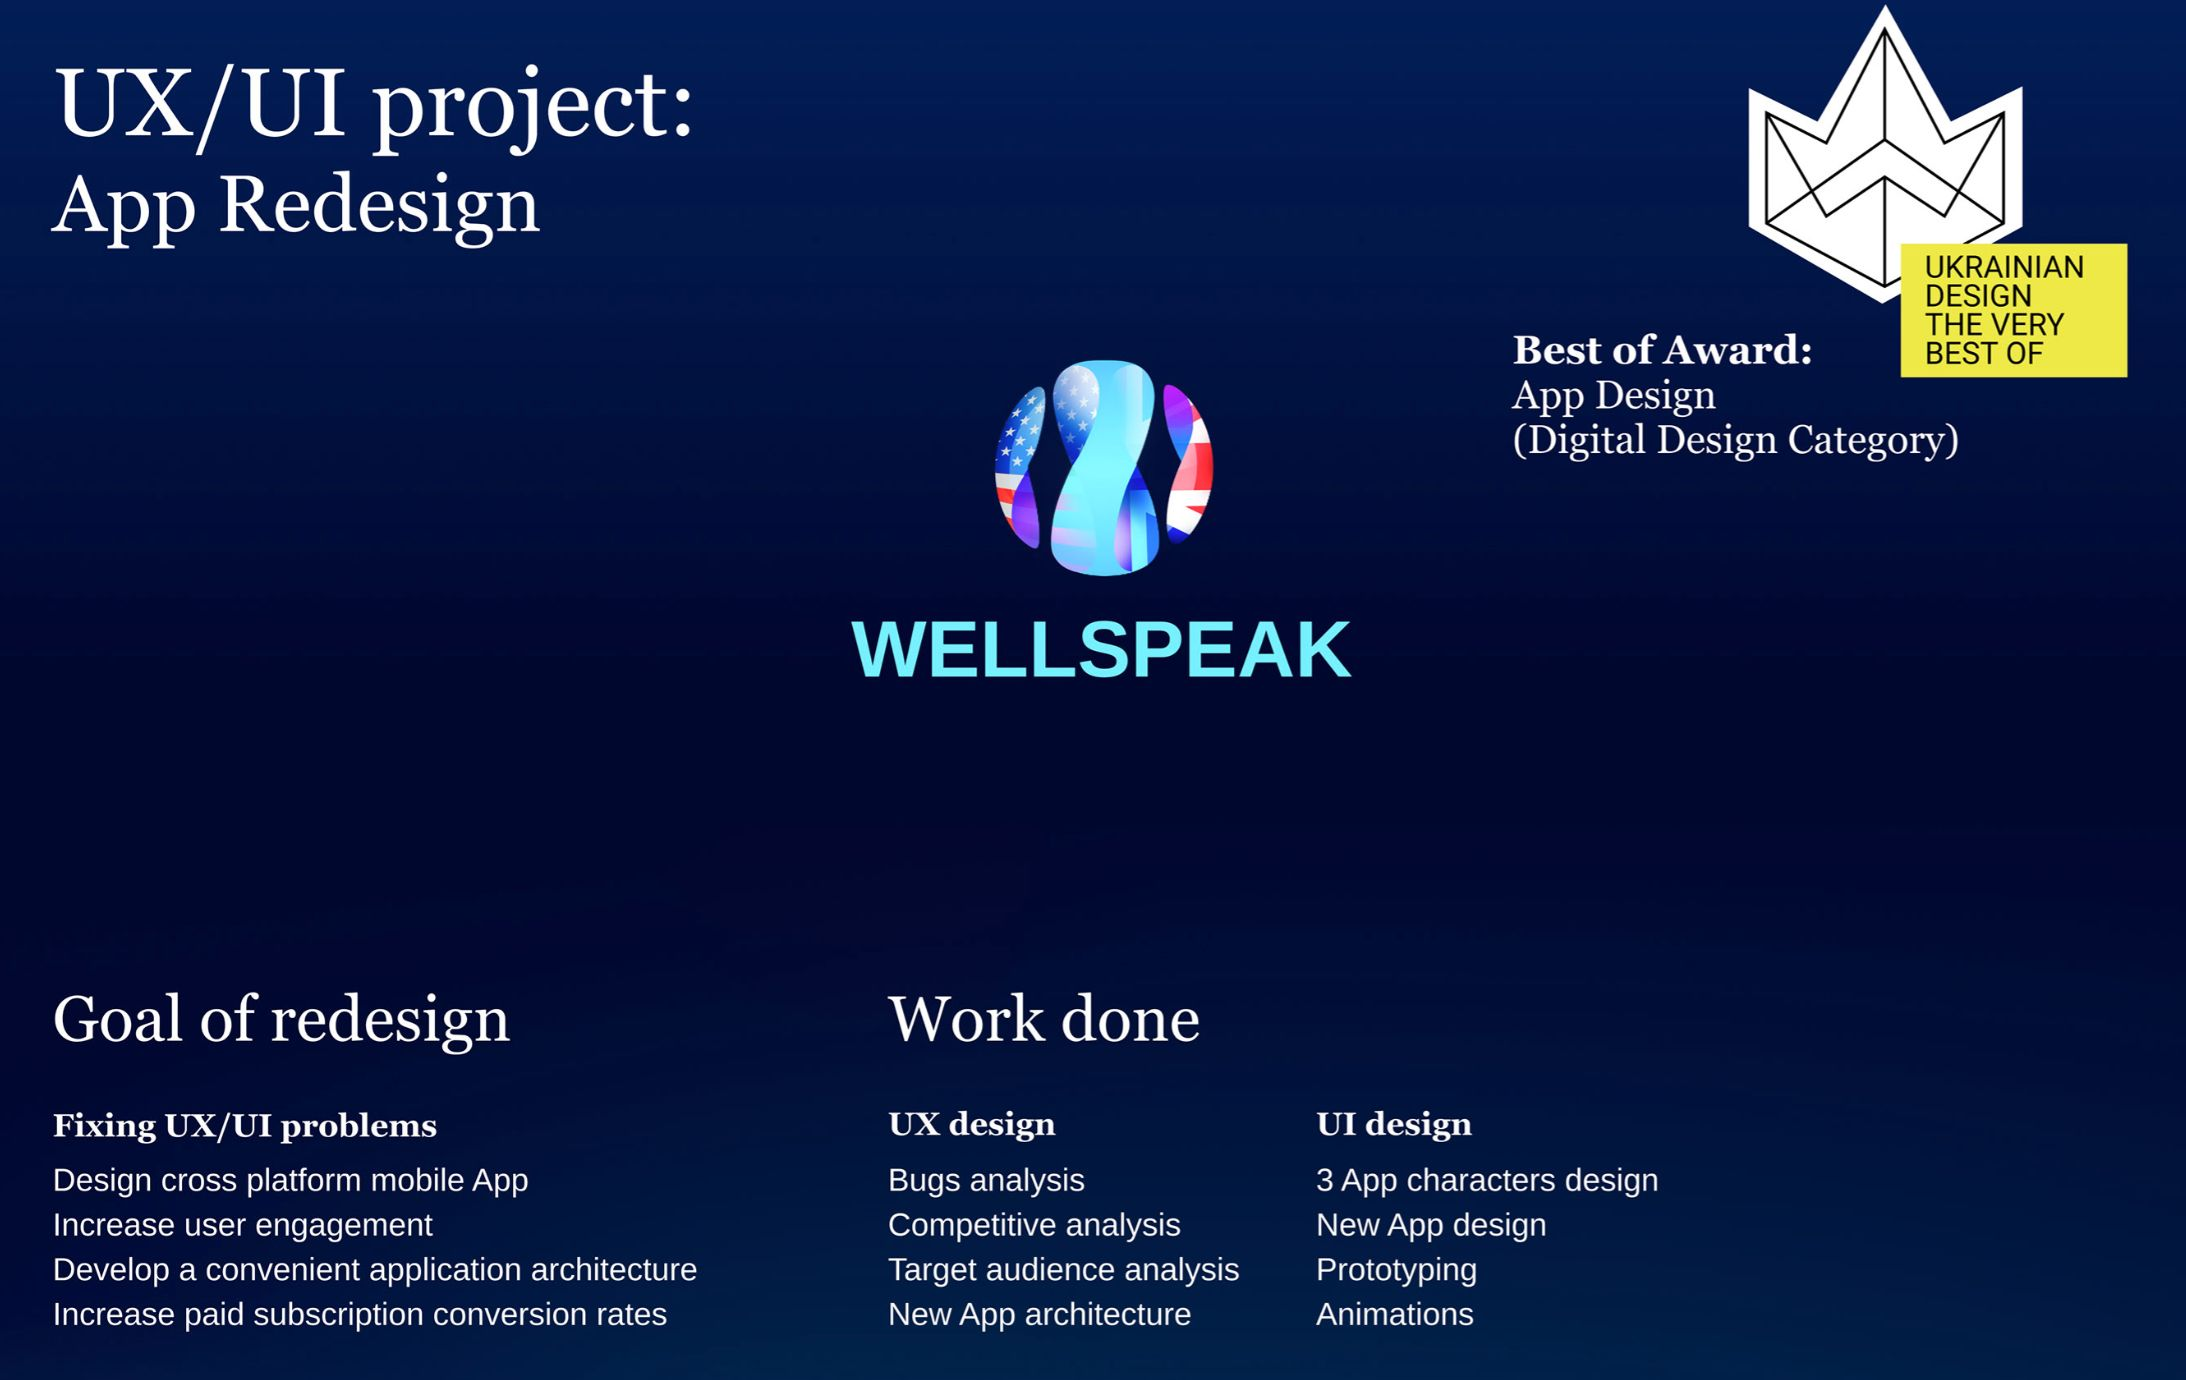 /how-we-redesigned-wellspeak-app-and-win-a-design-award-jm3j33a7 feature image